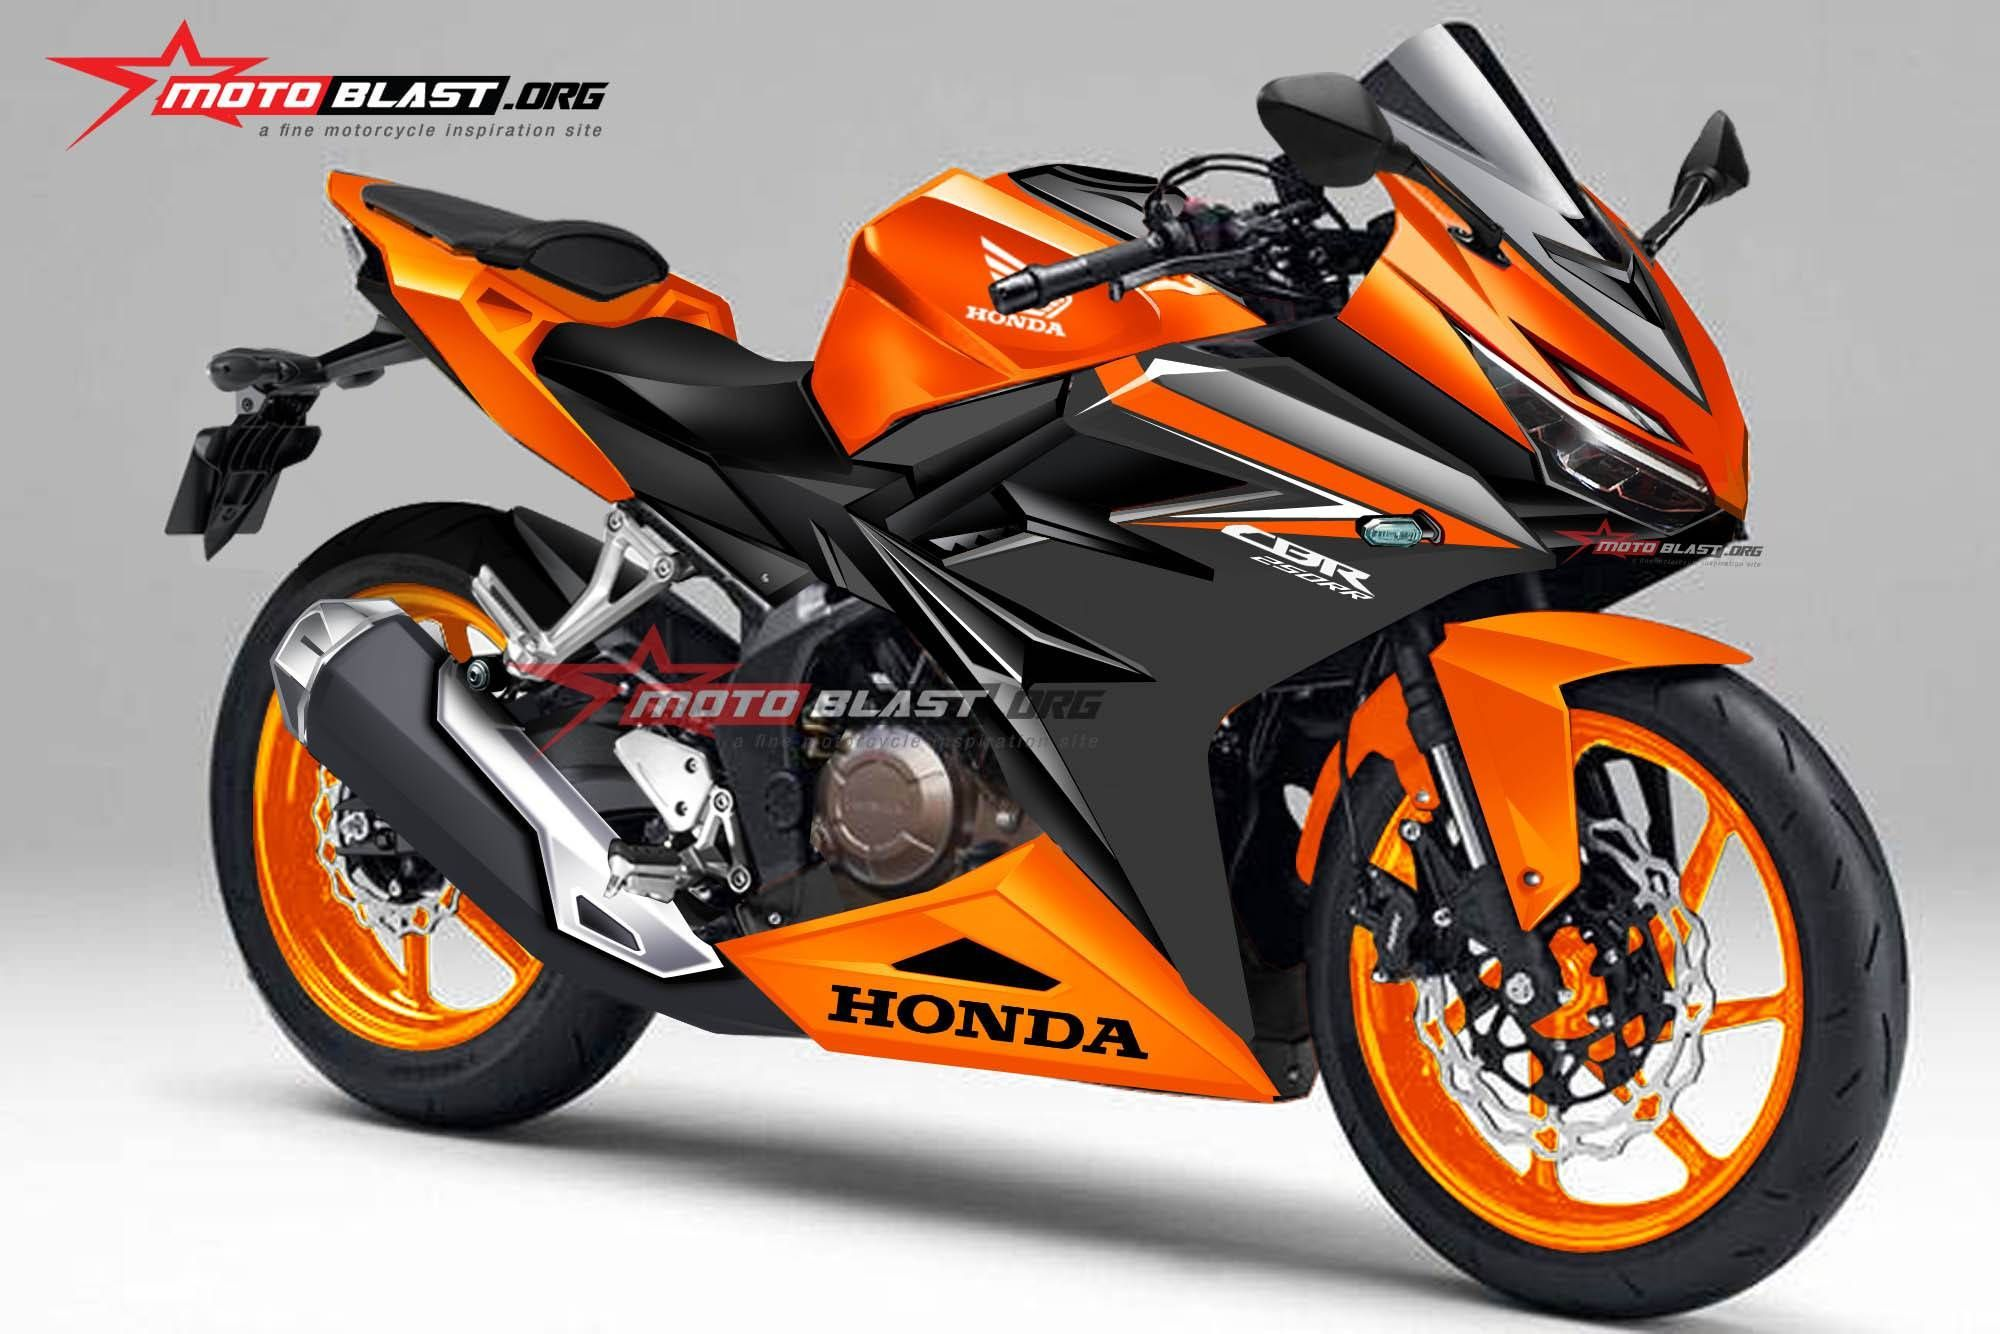 Image Result For Cbr 650 Rr Price In India Honda Motorcycles Cbr